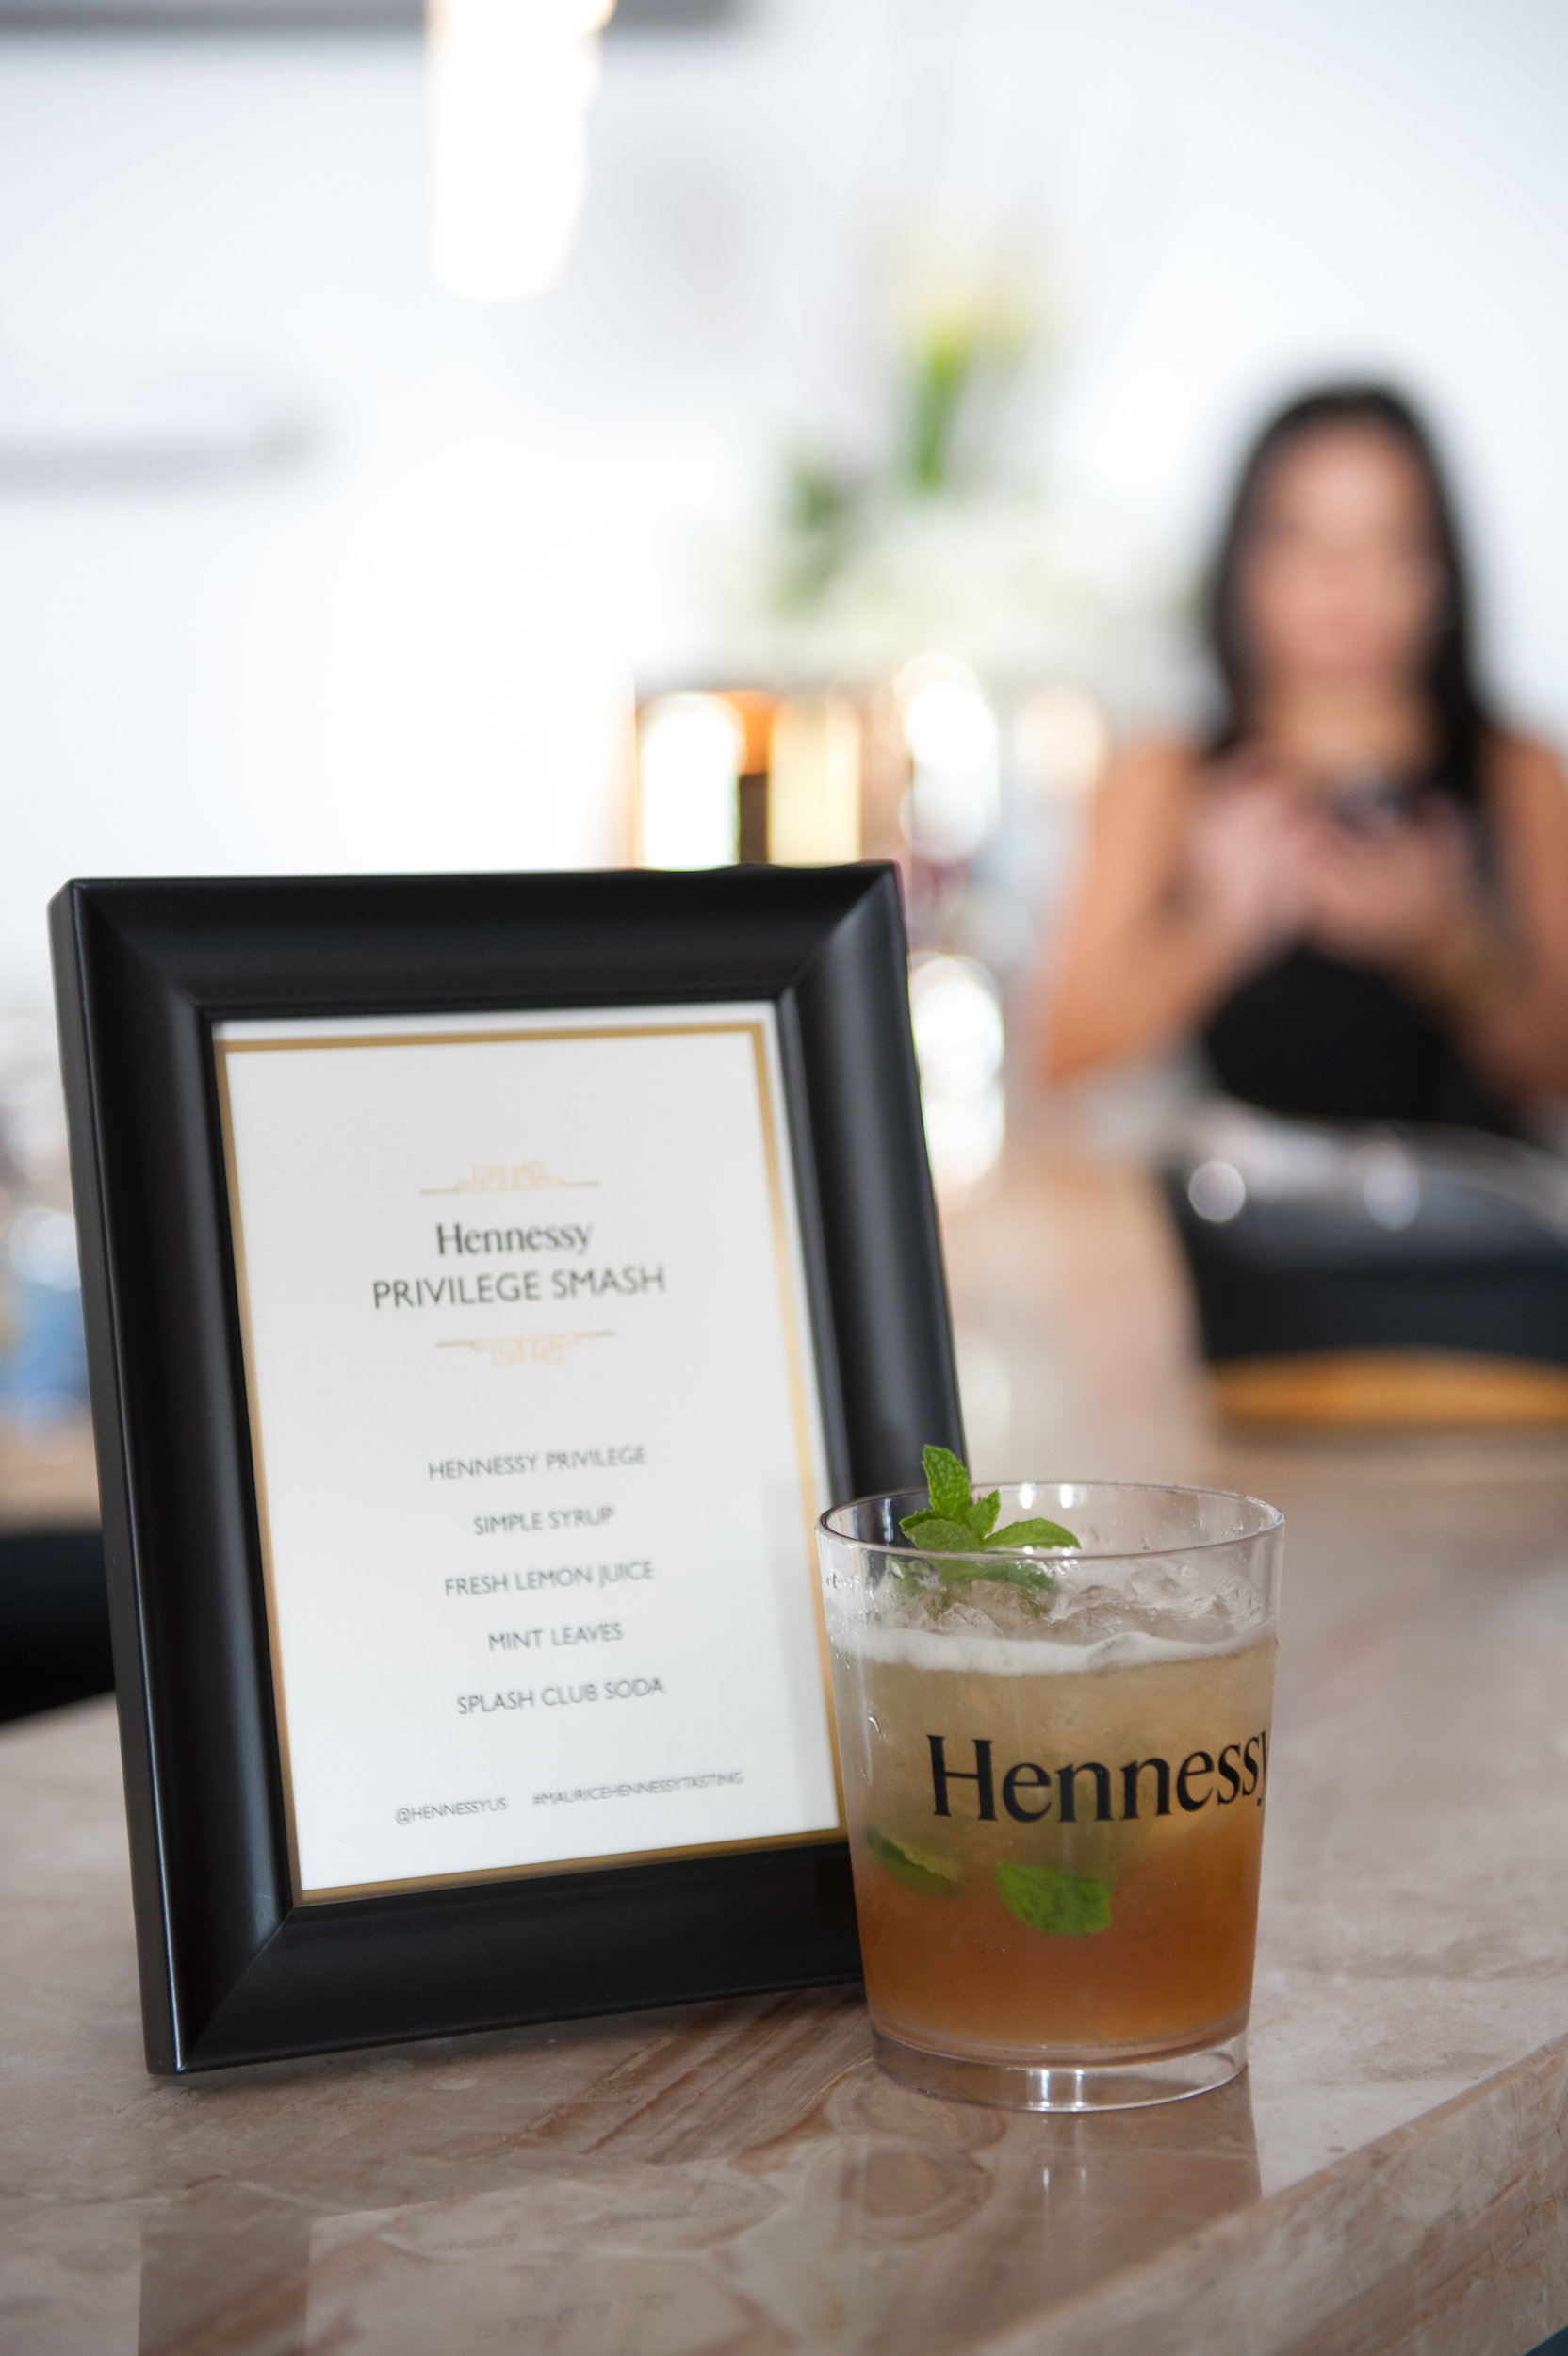 HENNESSY LUNCHEON 10 21 14-HENNESSY LUNCHEON 10 21 14-0061.jpg